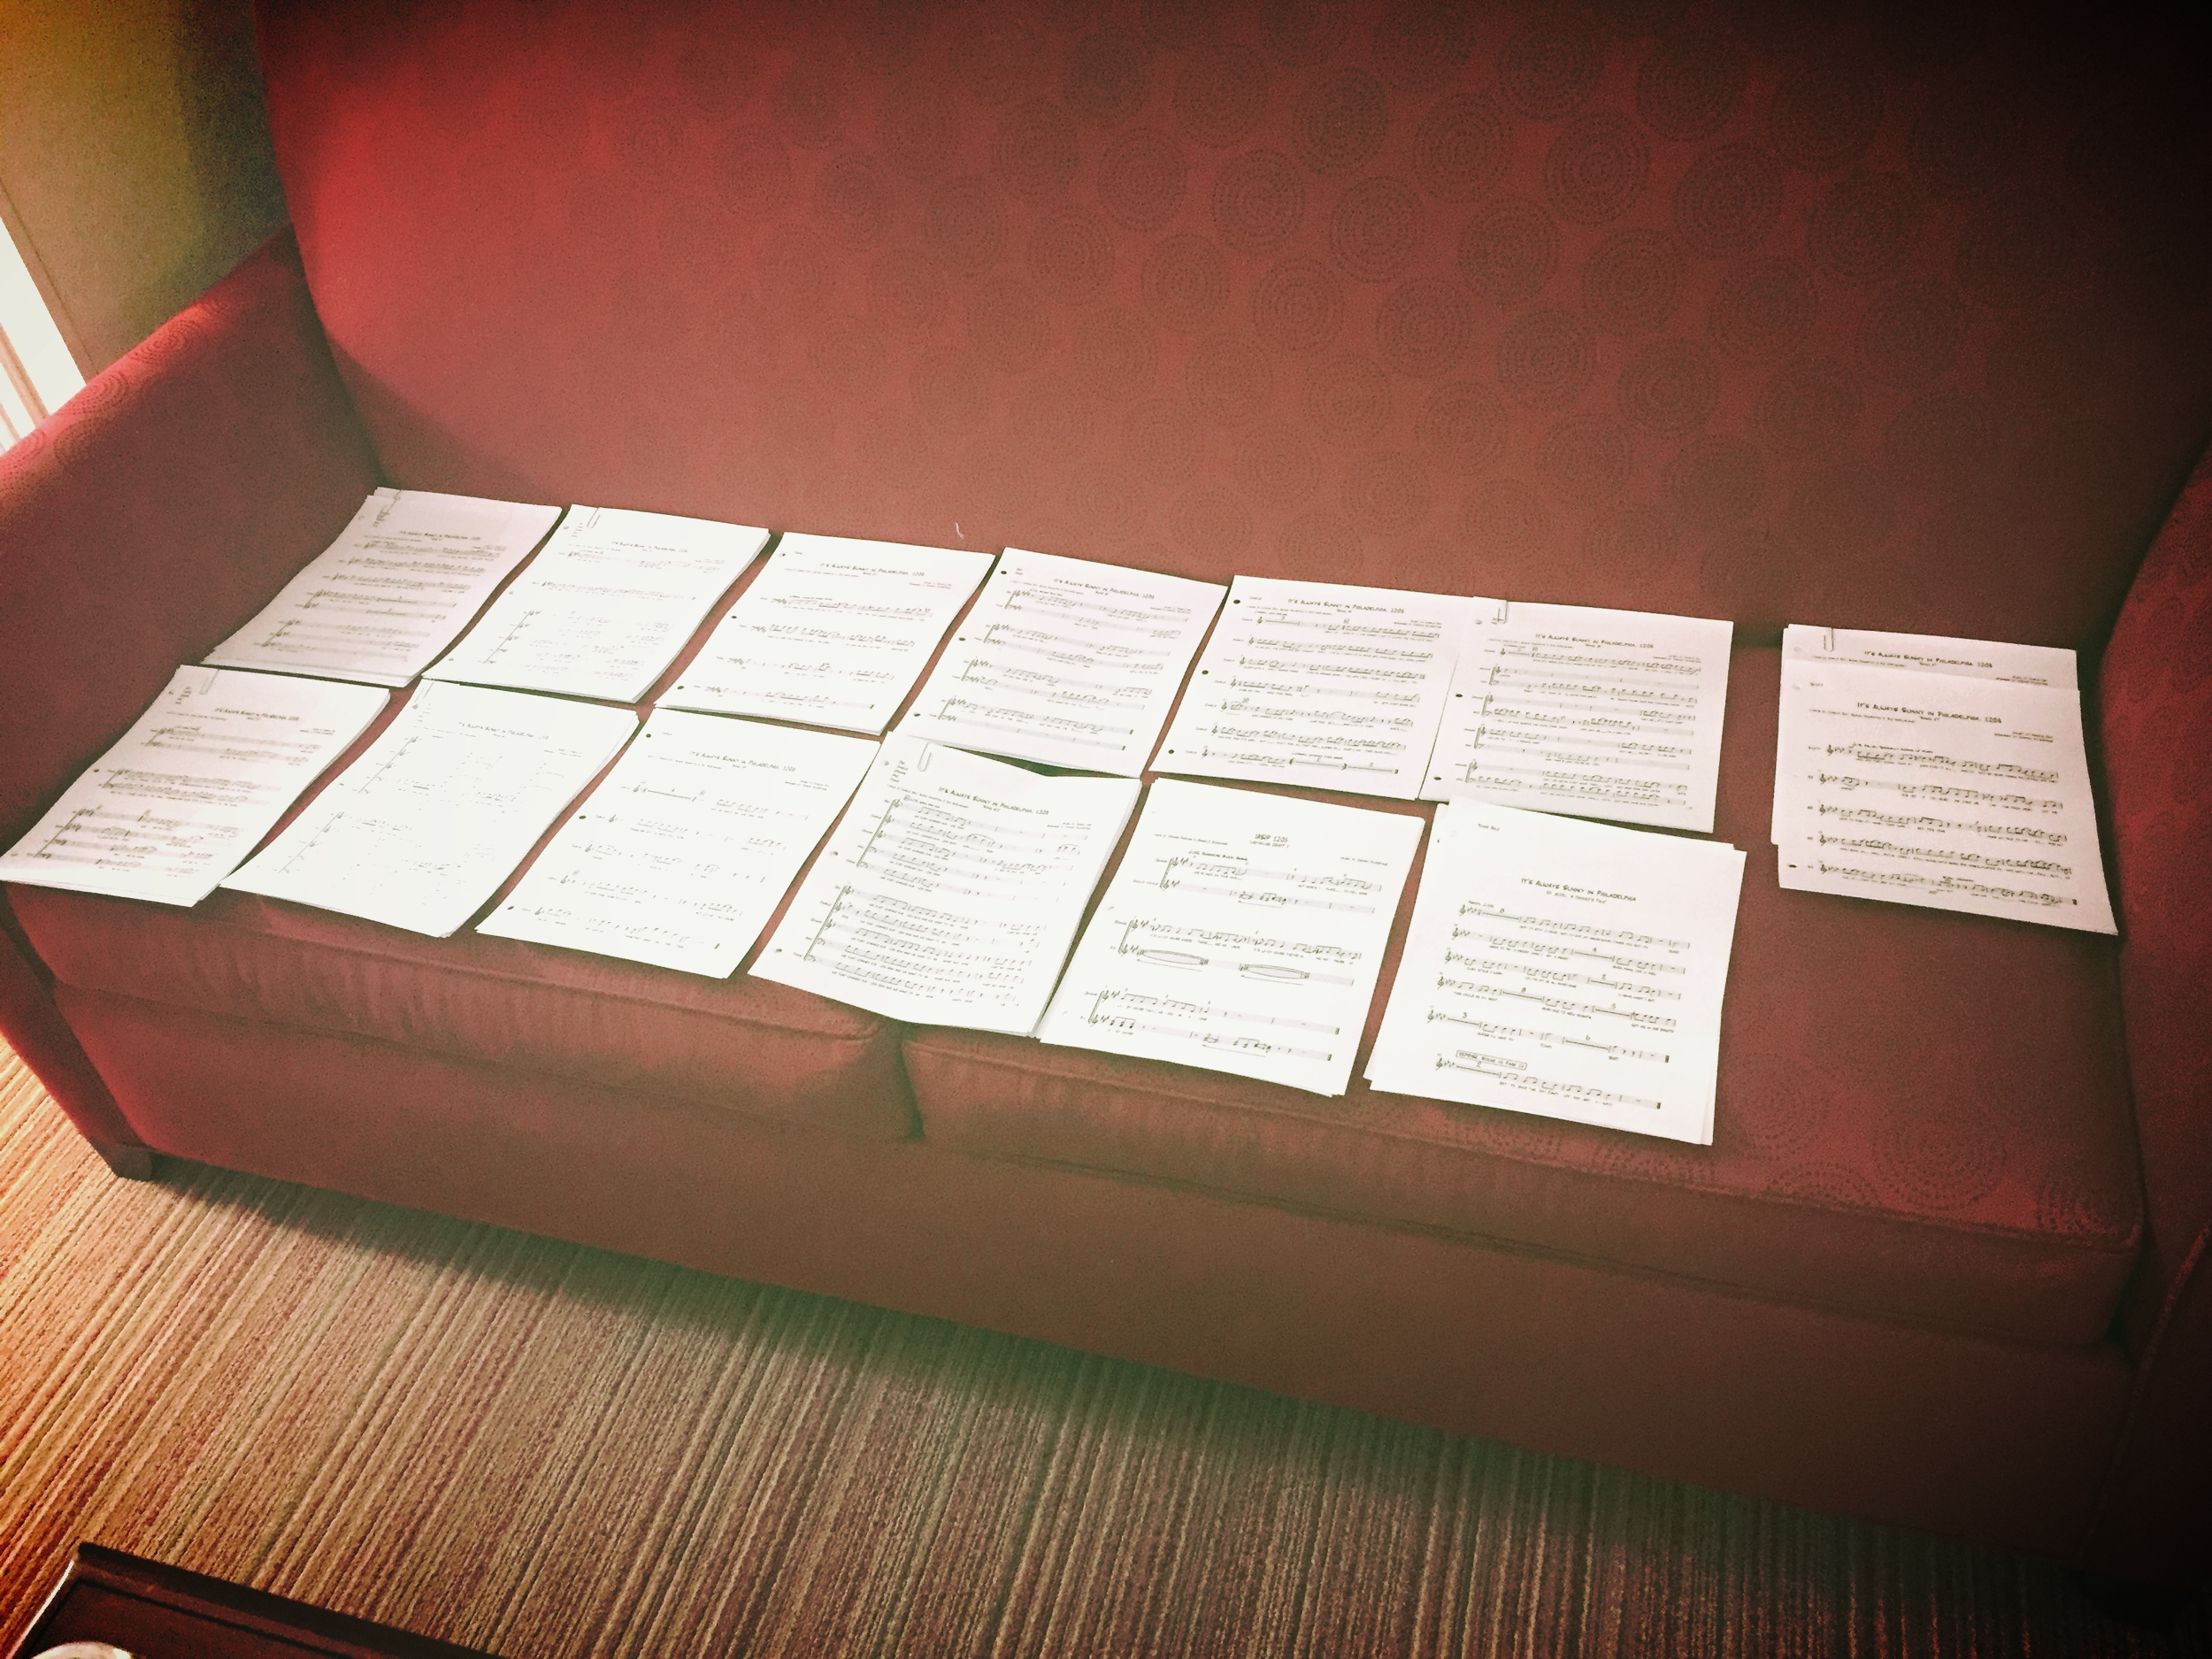 Organizing lyrics and sheet music for studio session